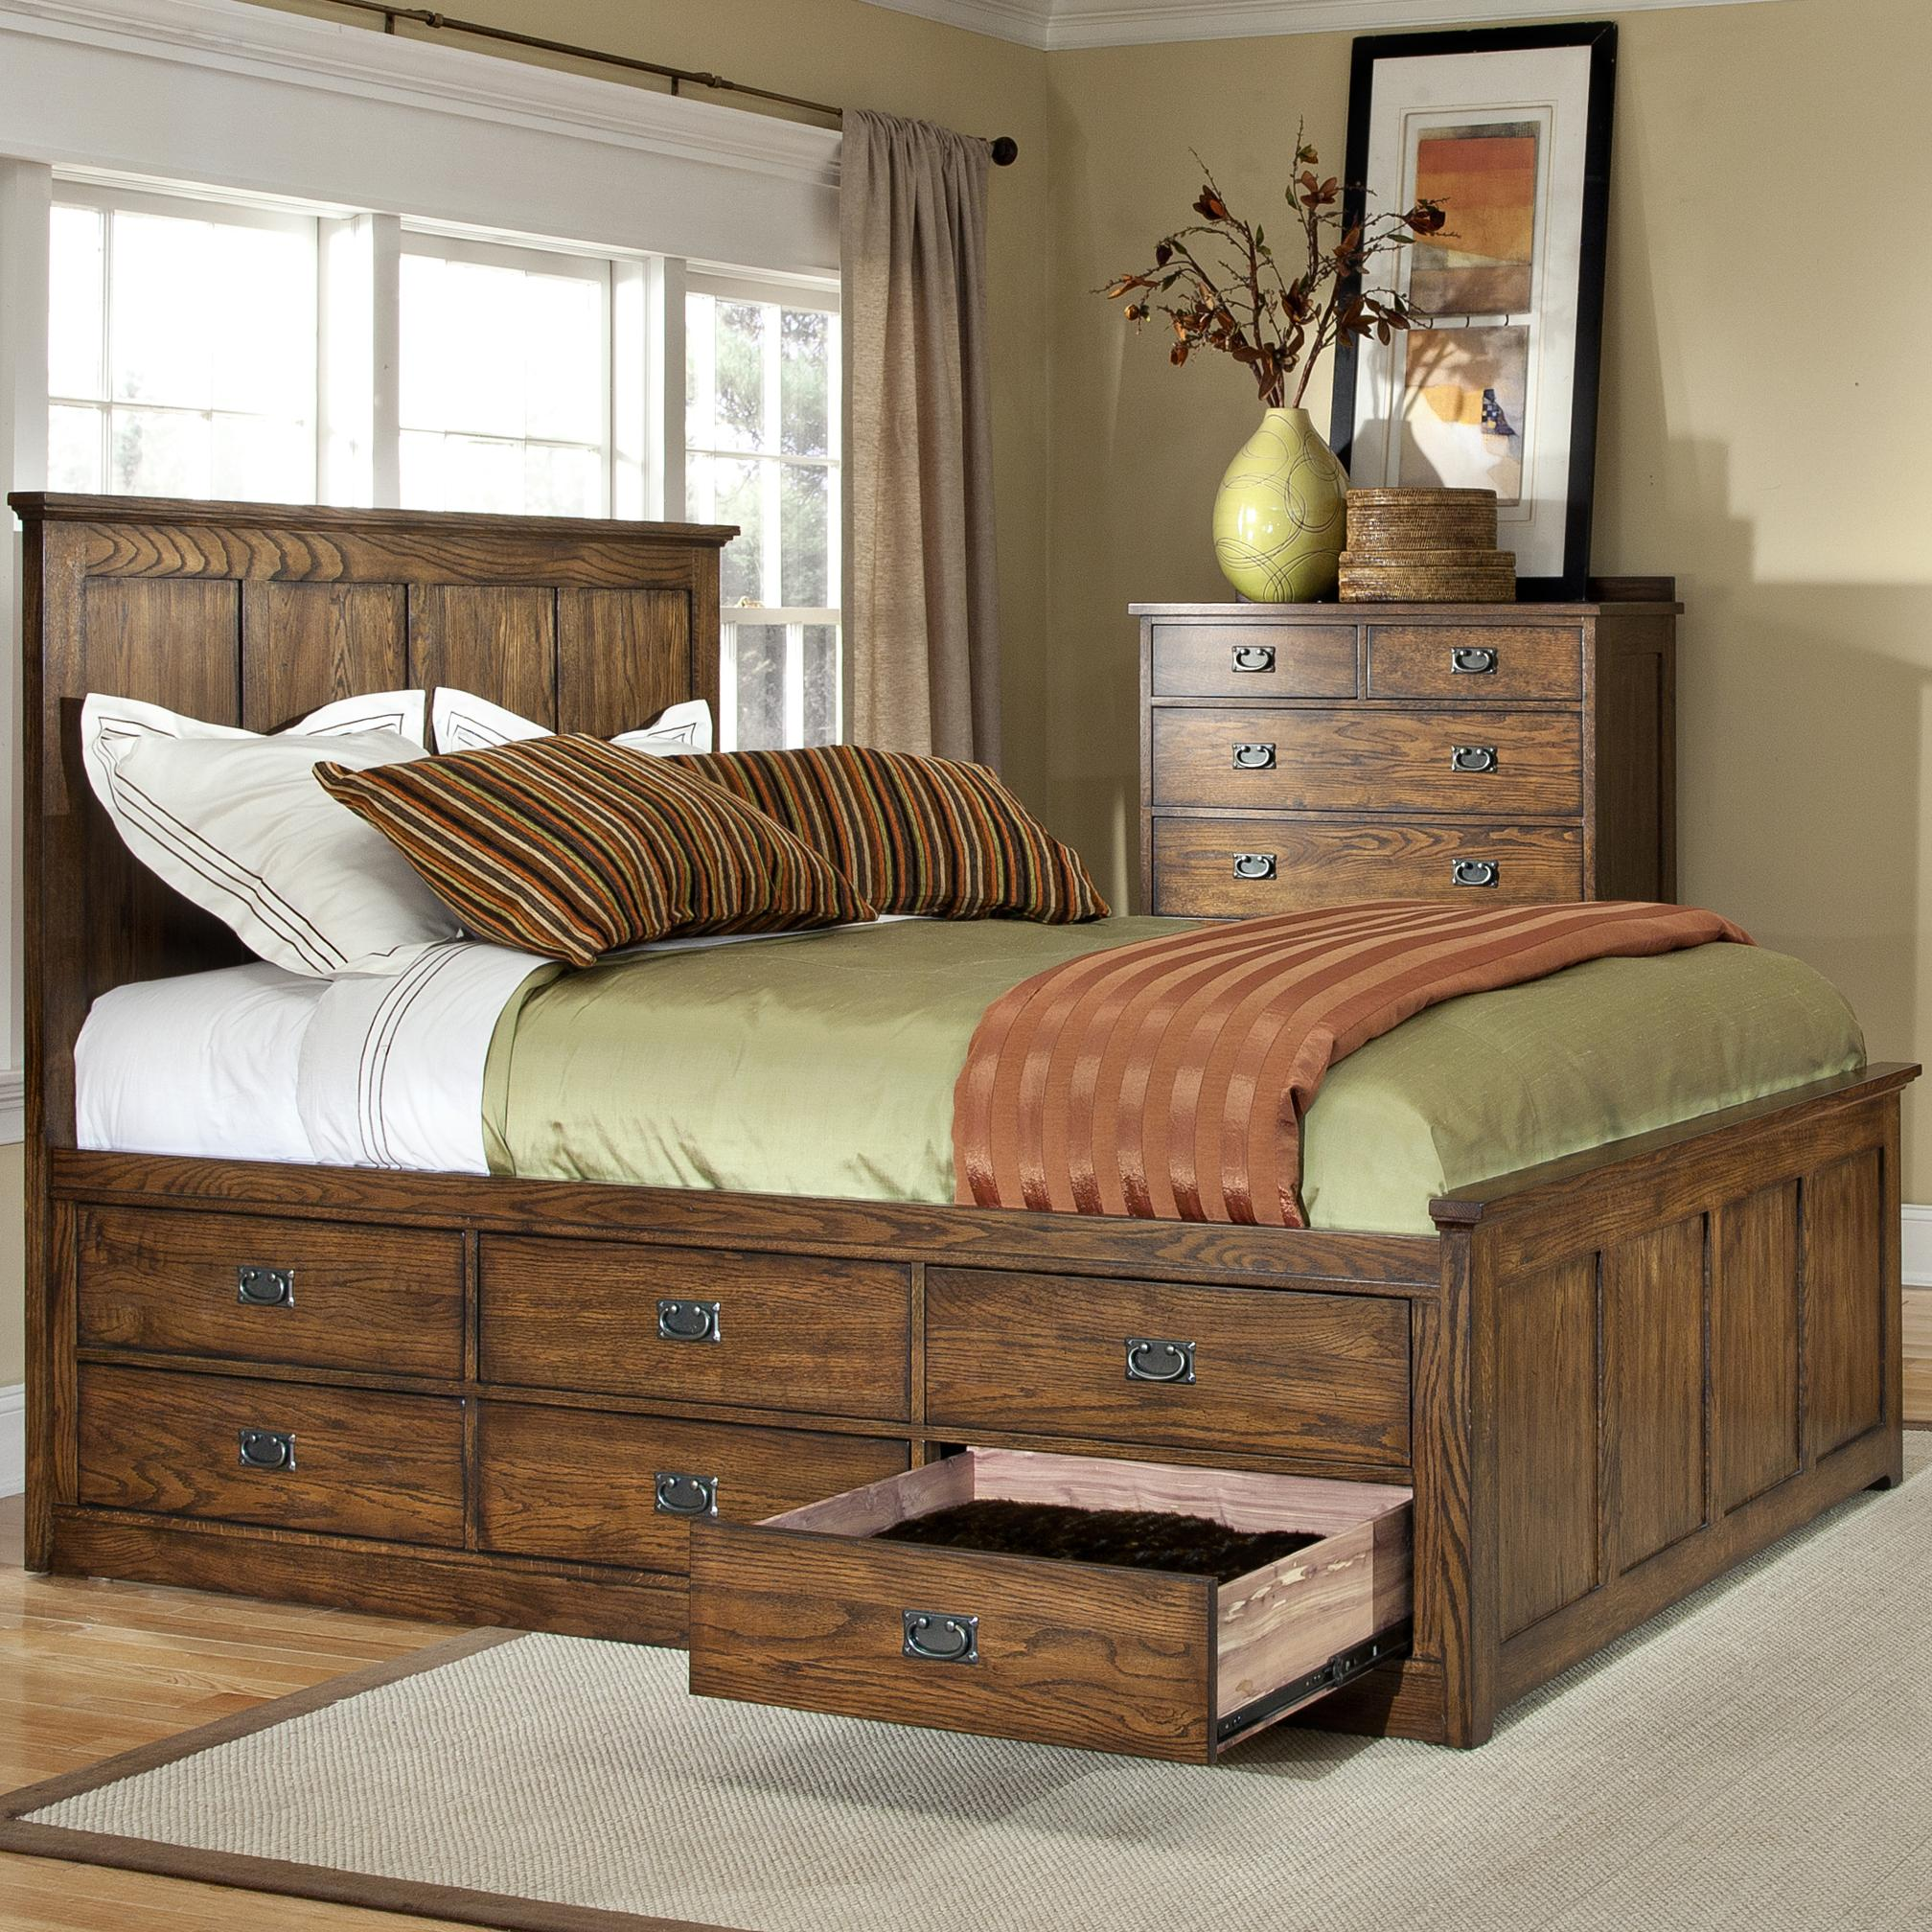 Under Bed Storage Frame Oak Park Mission Queen Bed With 9 Underbed Storage Drawers By Intercon At Furniture Options New York